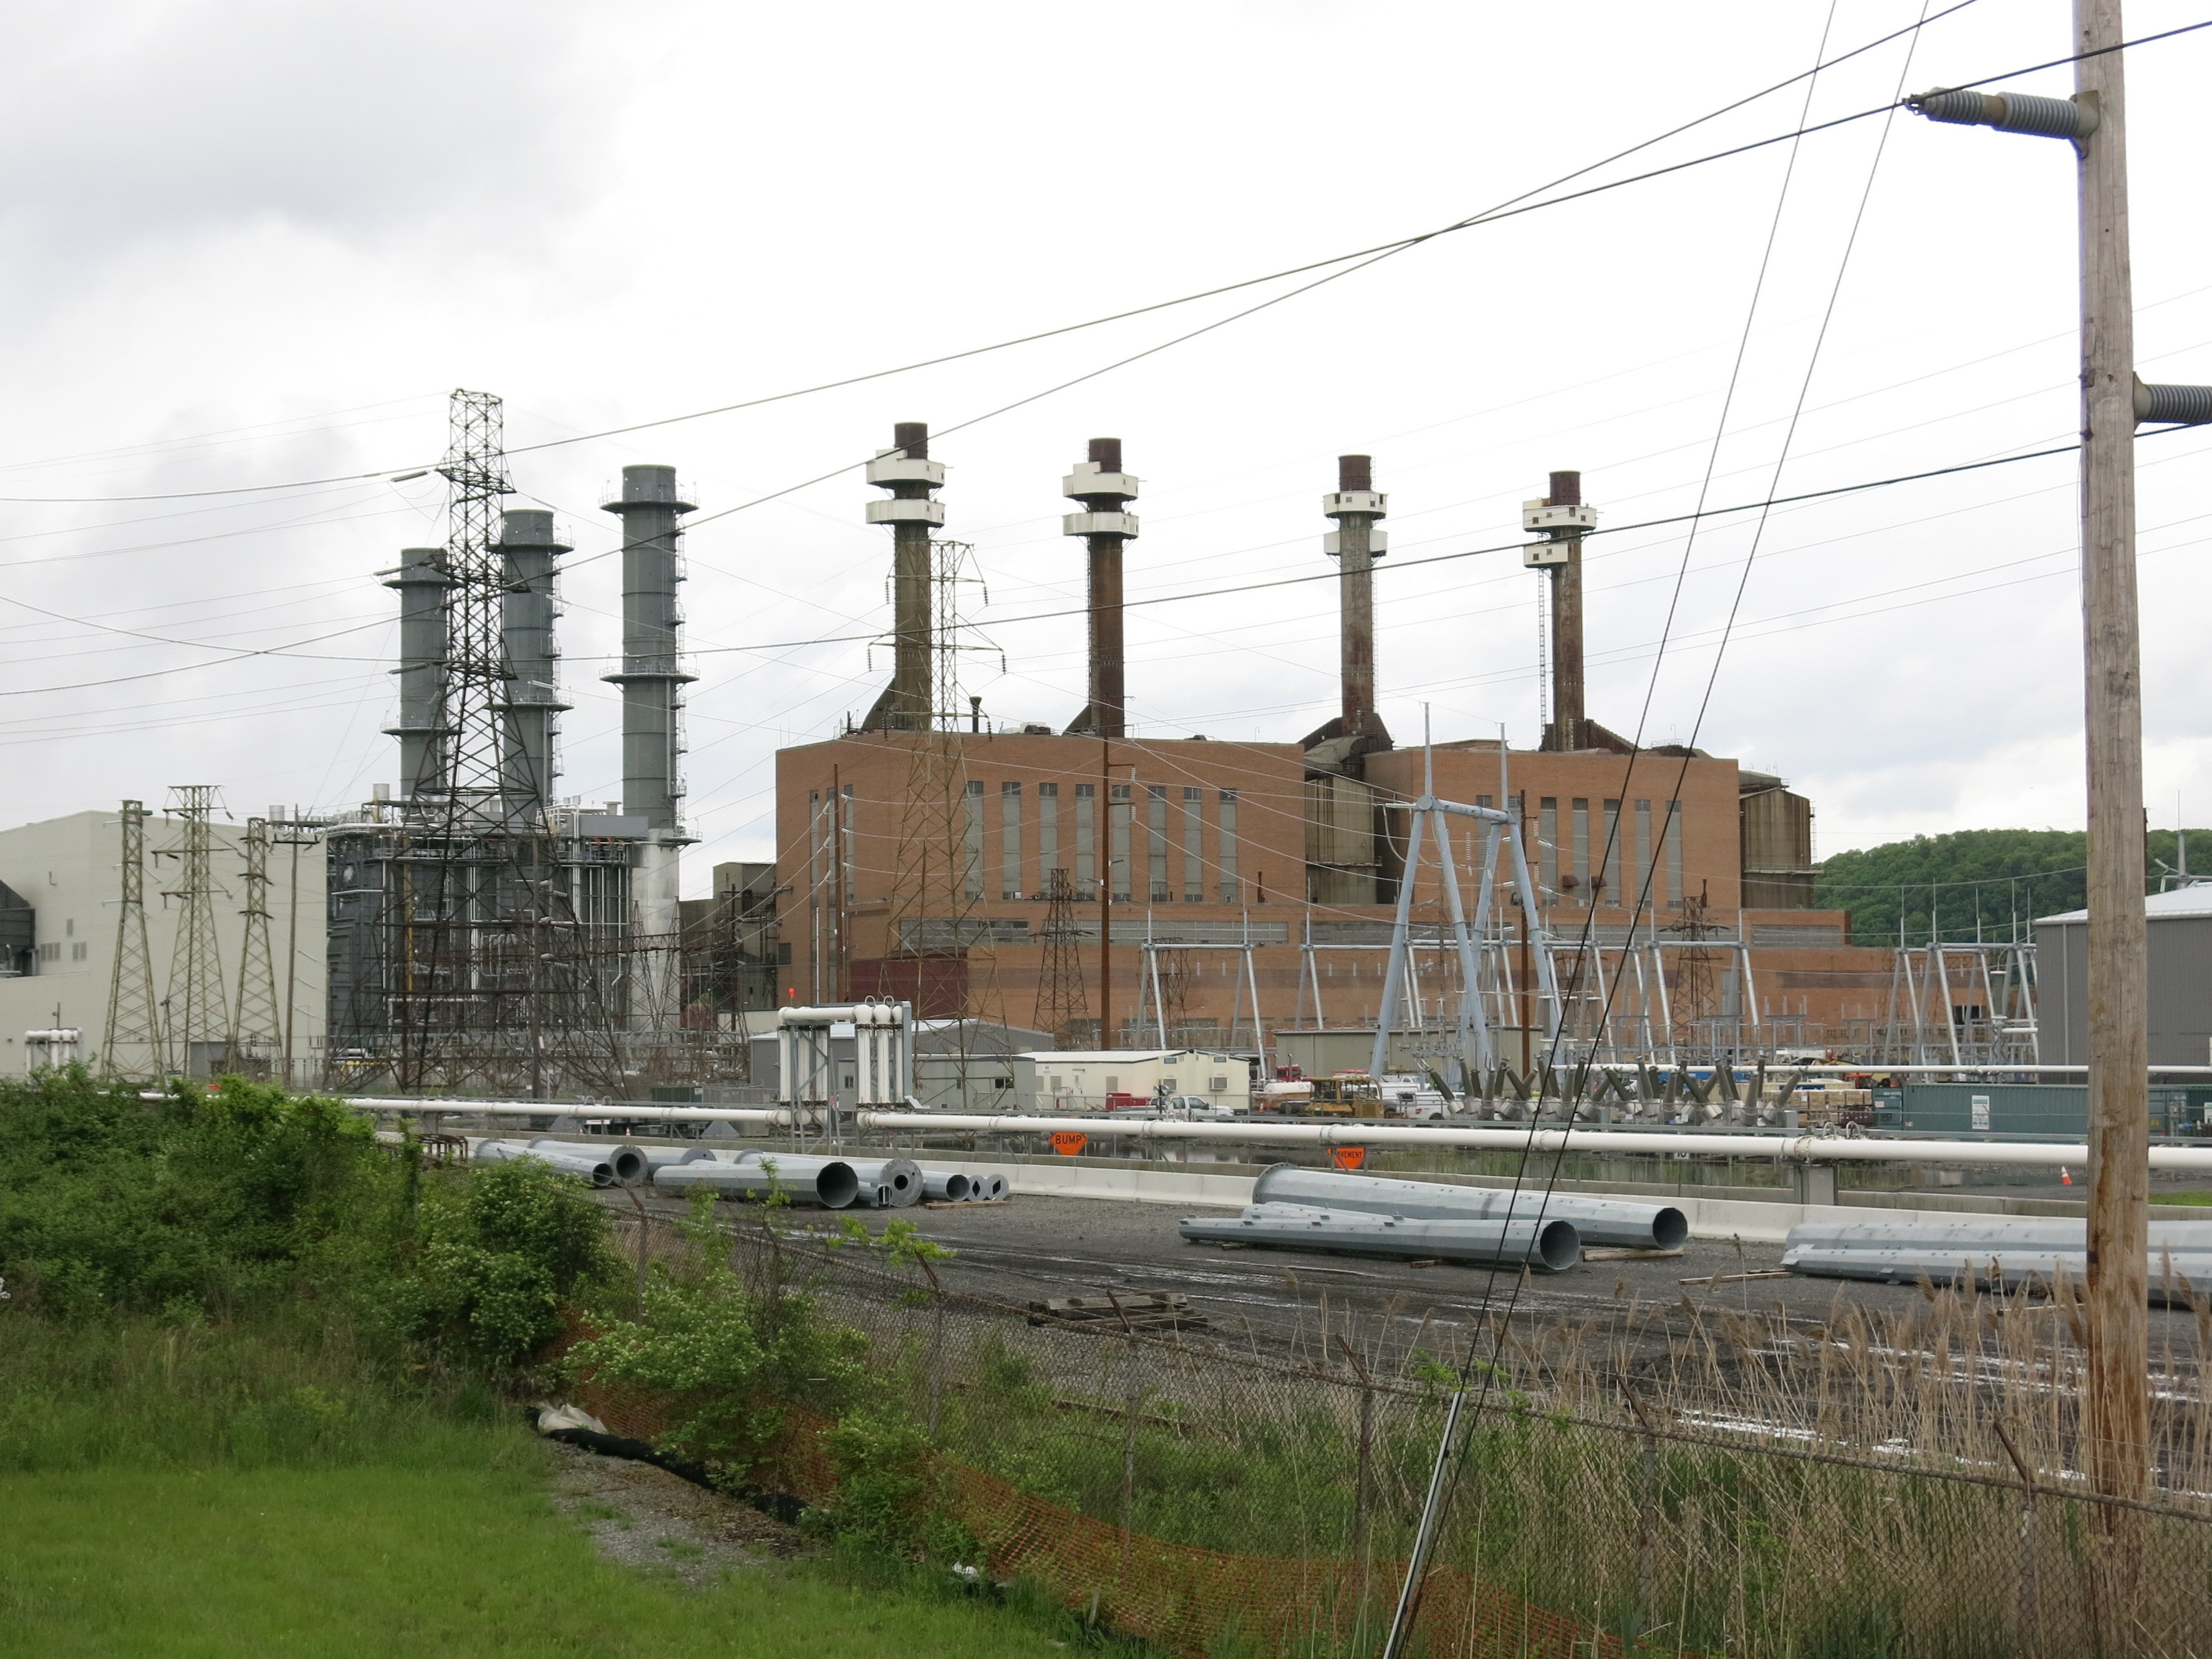 Finding New Opportunity For Old Coal-Fired Power Plant Sites